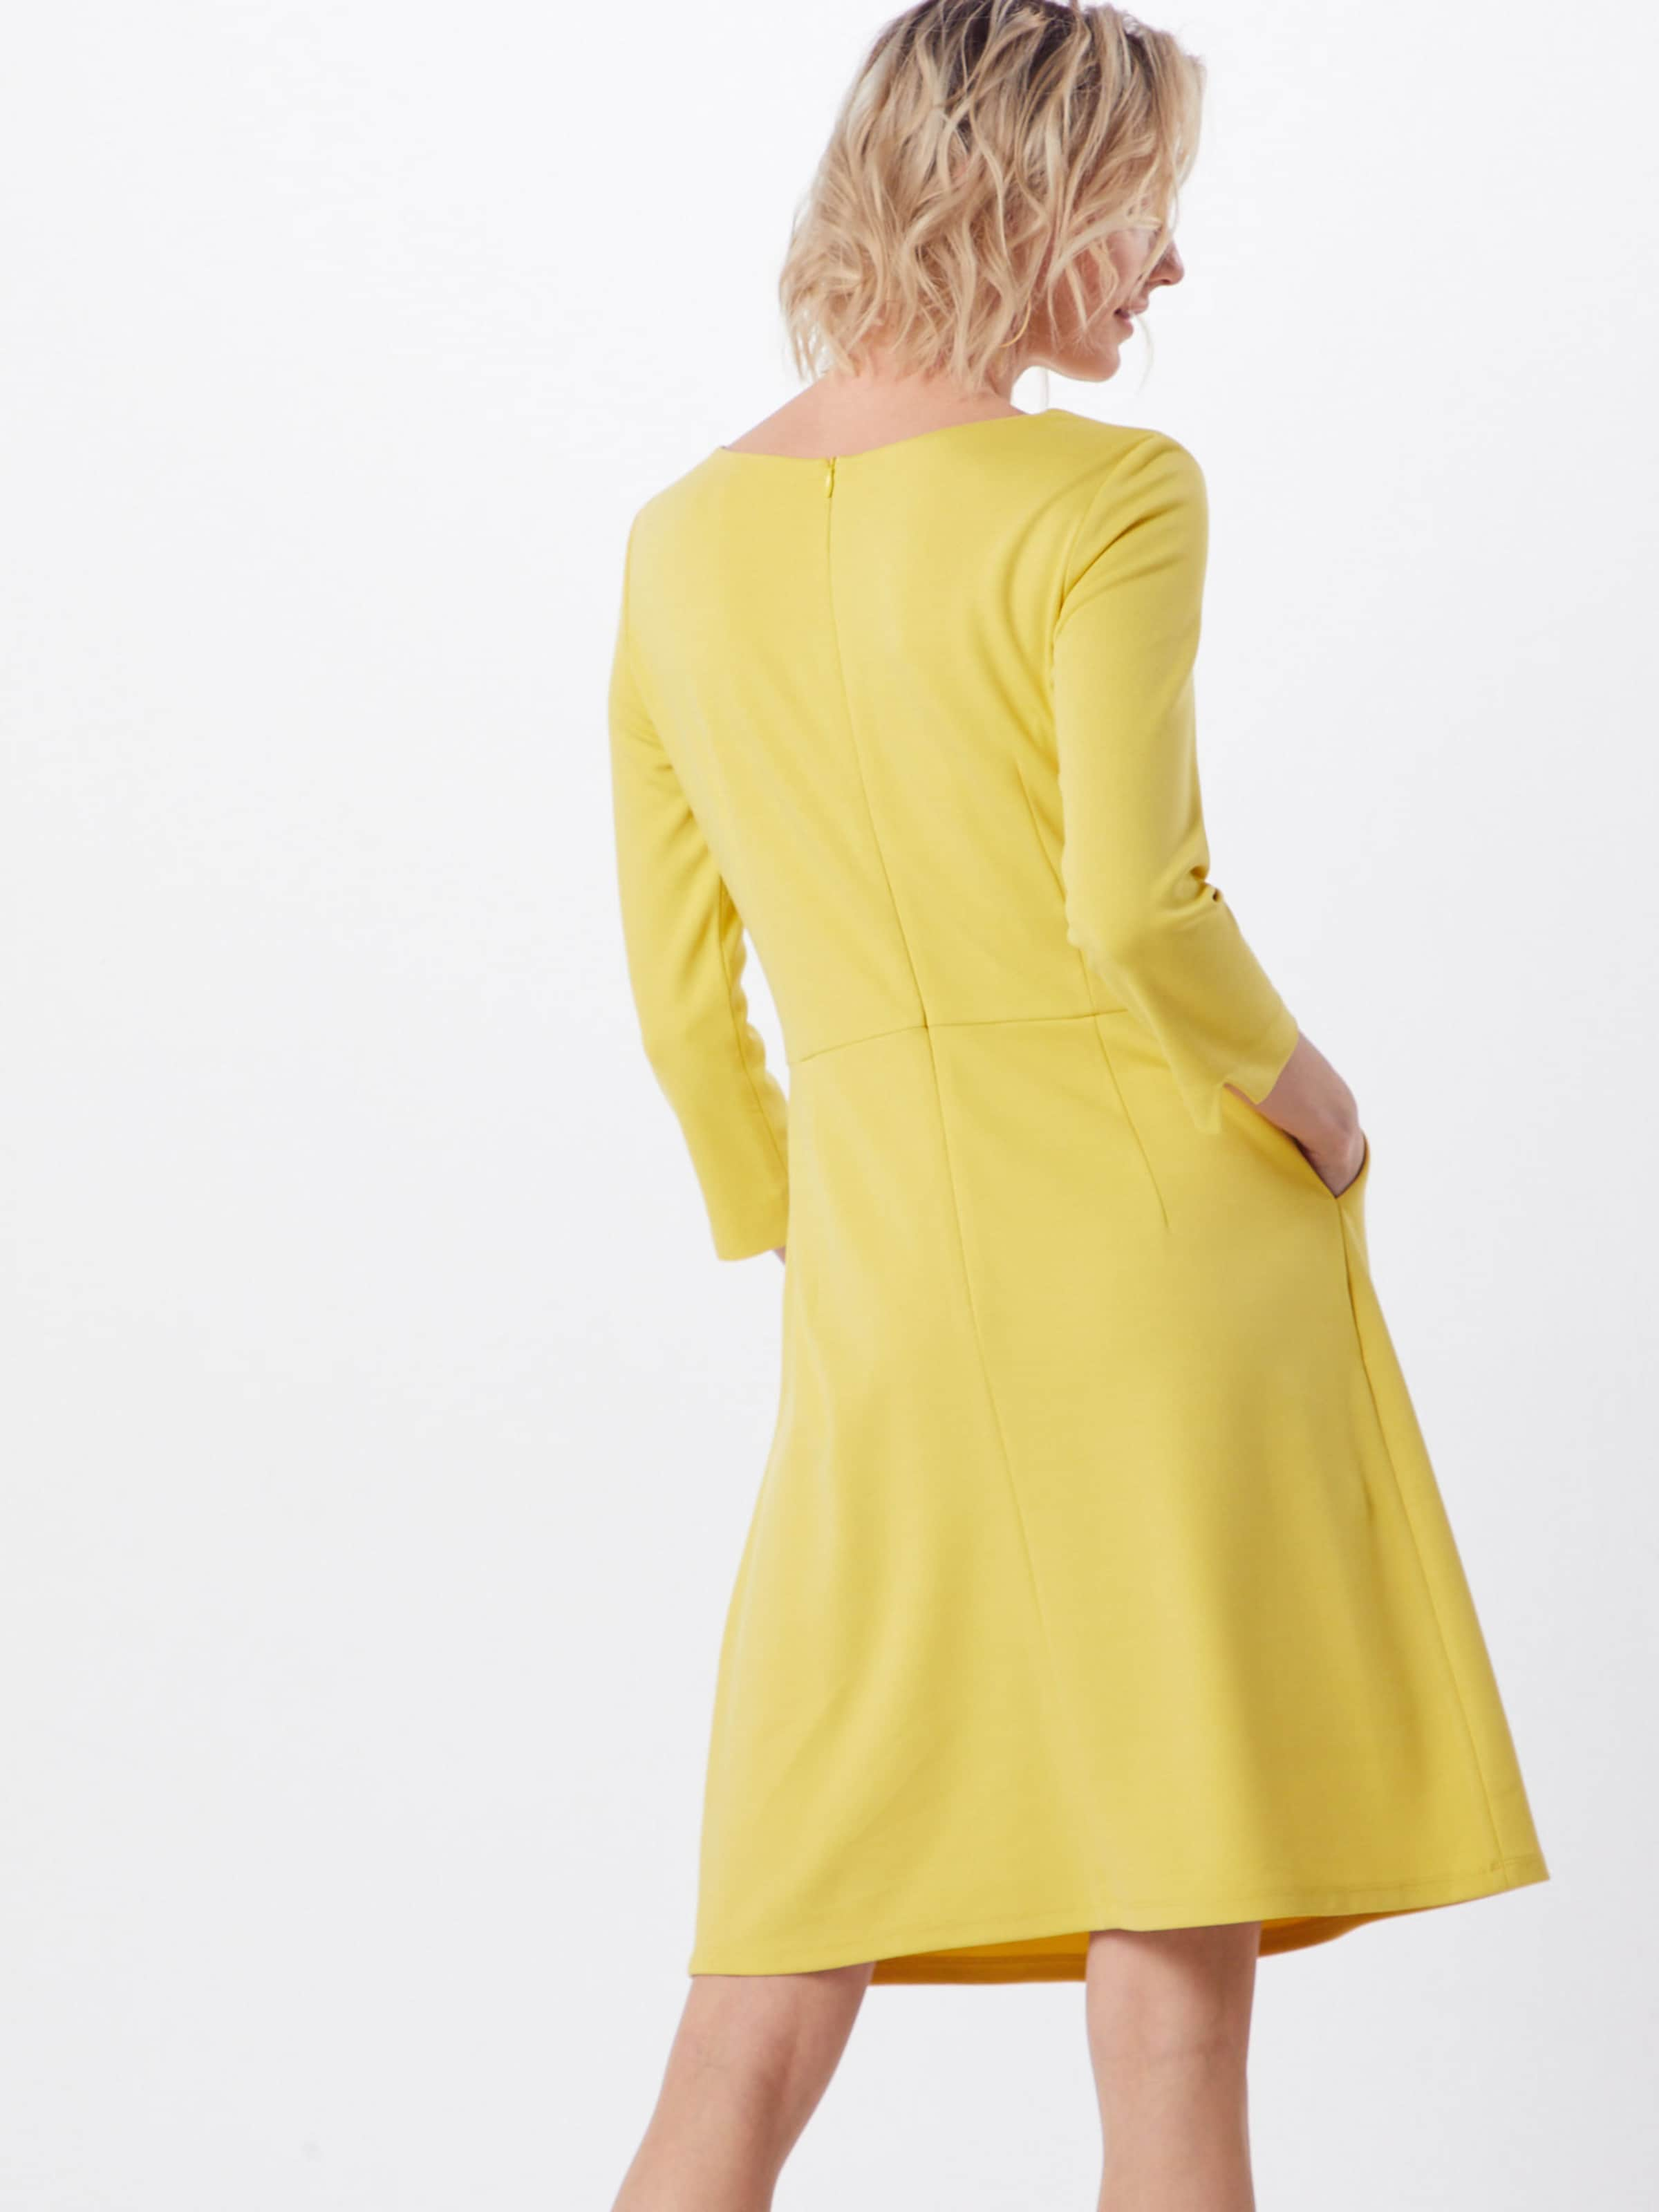 En Moreamp; Robe Jaune En Moreamp; Robe XP80knONw